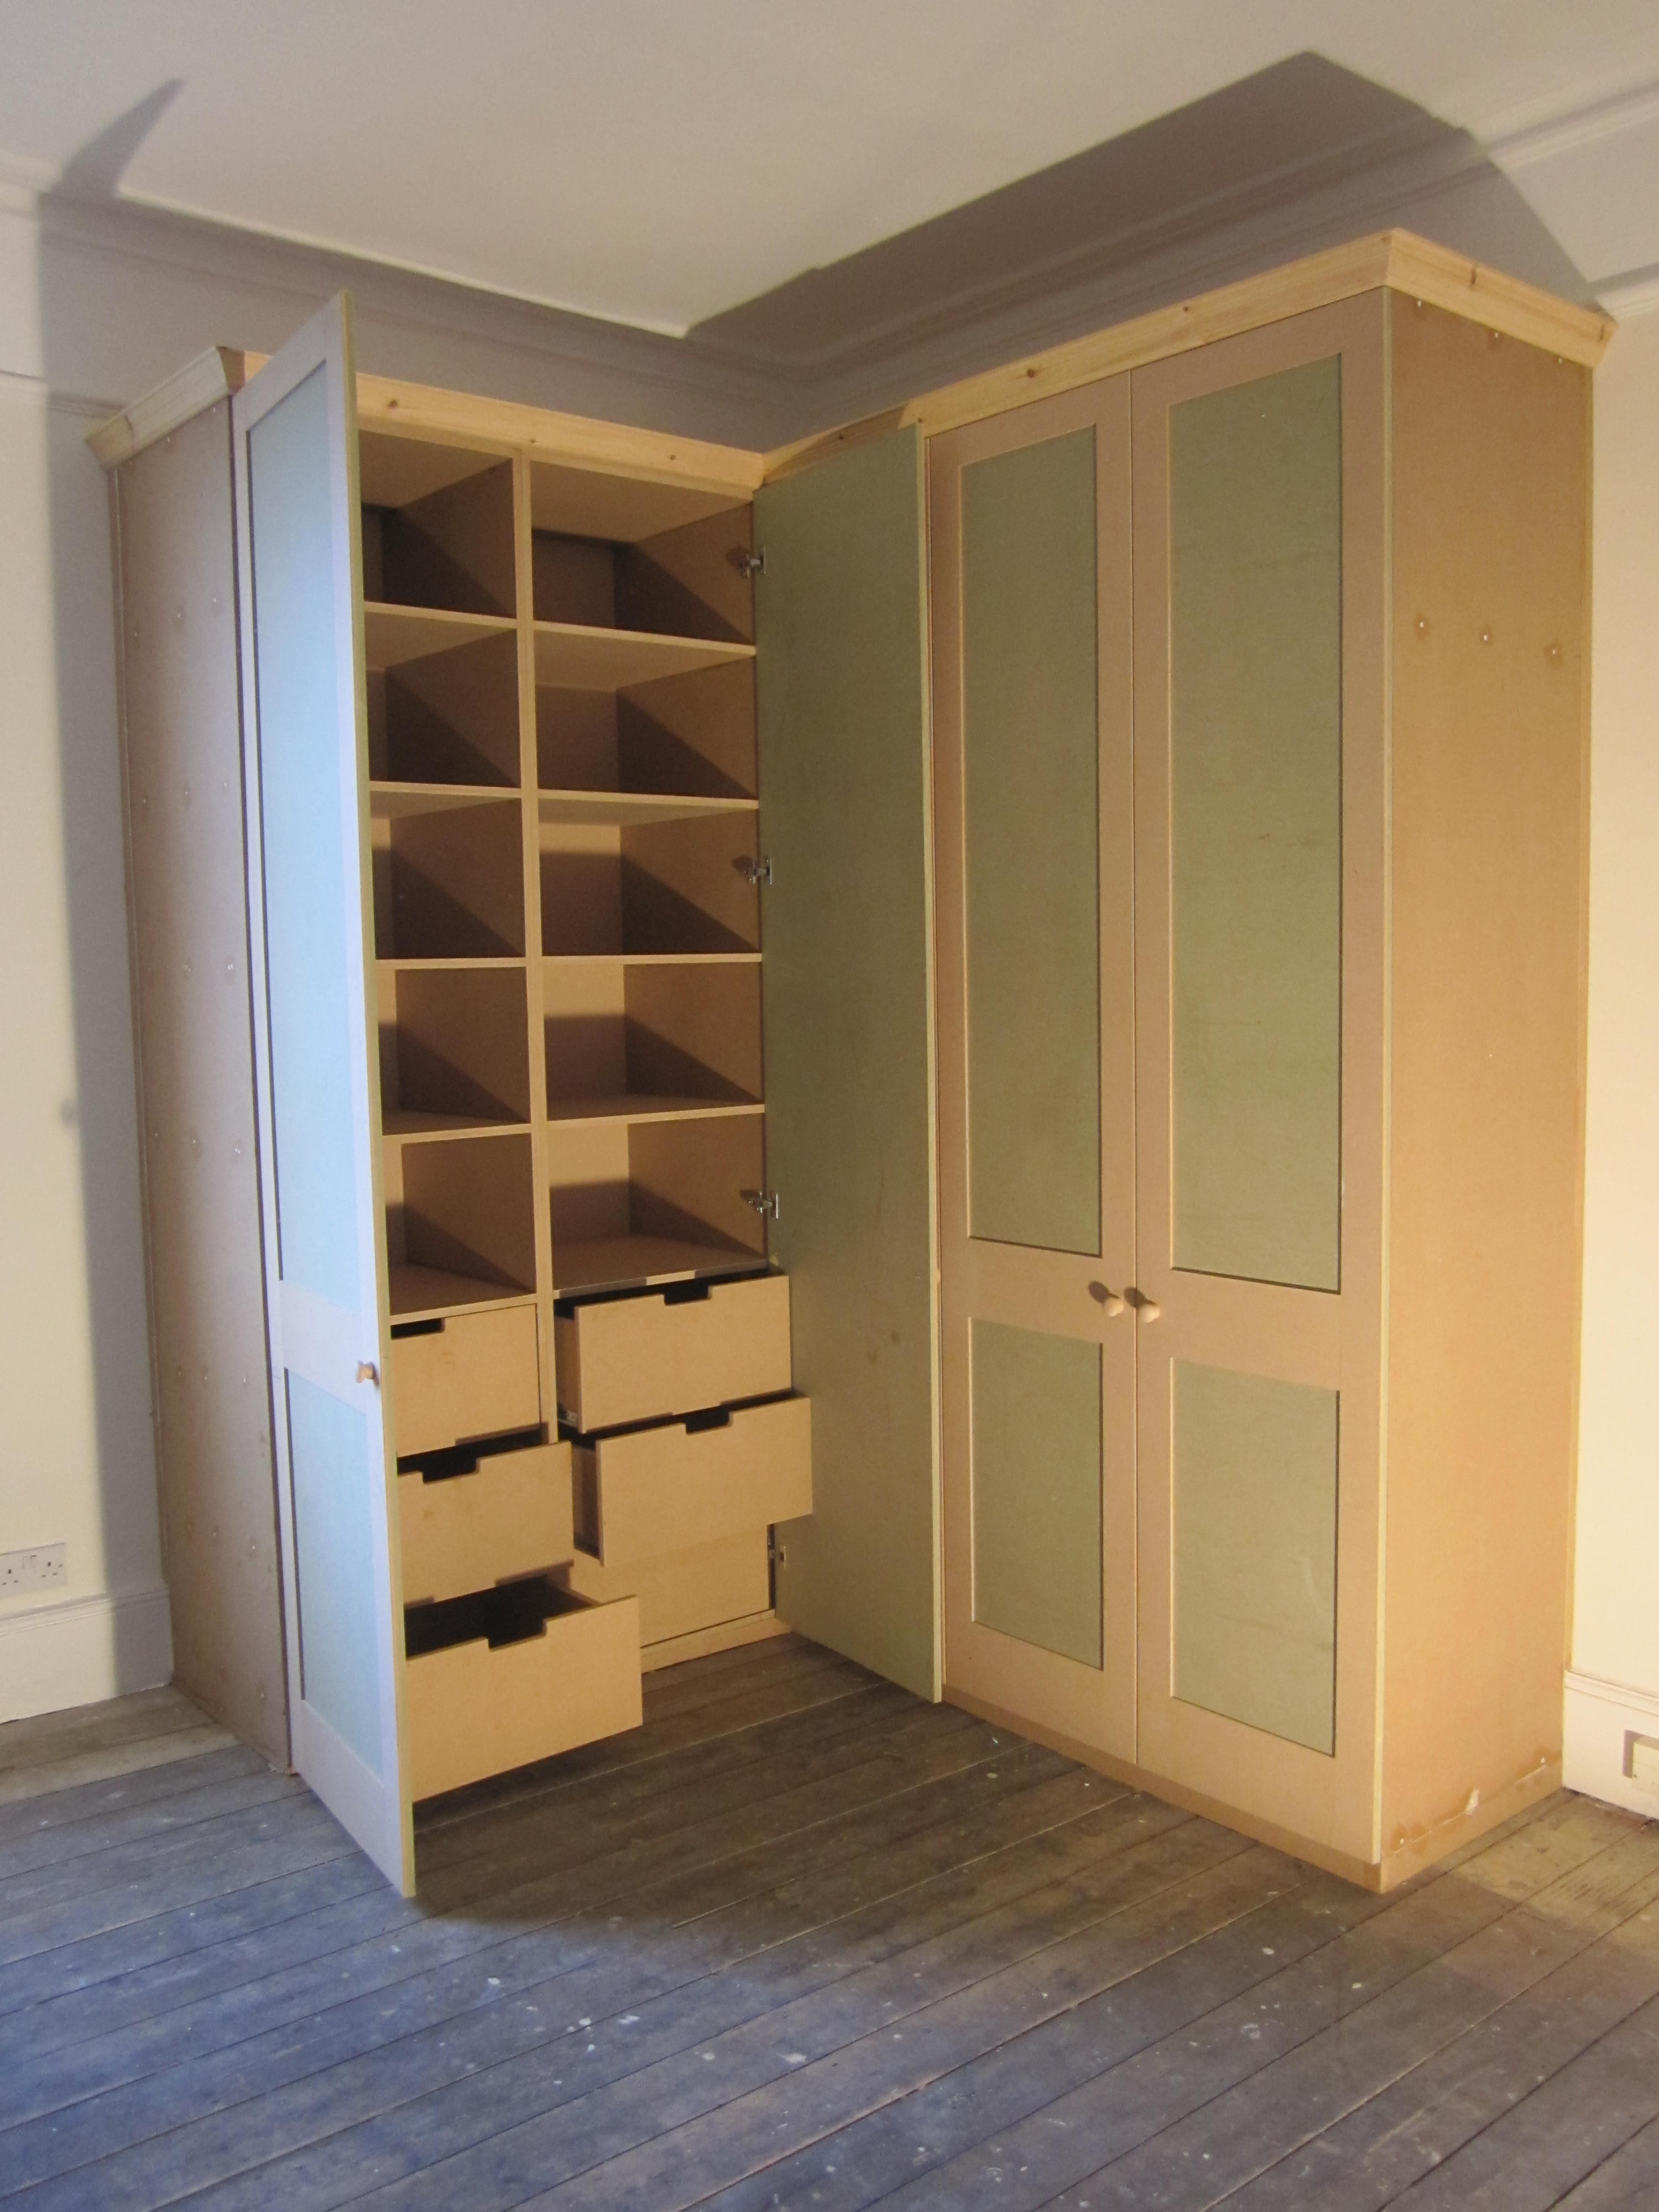 For Idea Of Drawer Shape Only Closets Pinterest Drawers And In Wardrobe With Drawers And Shelves (View 6 of 15)